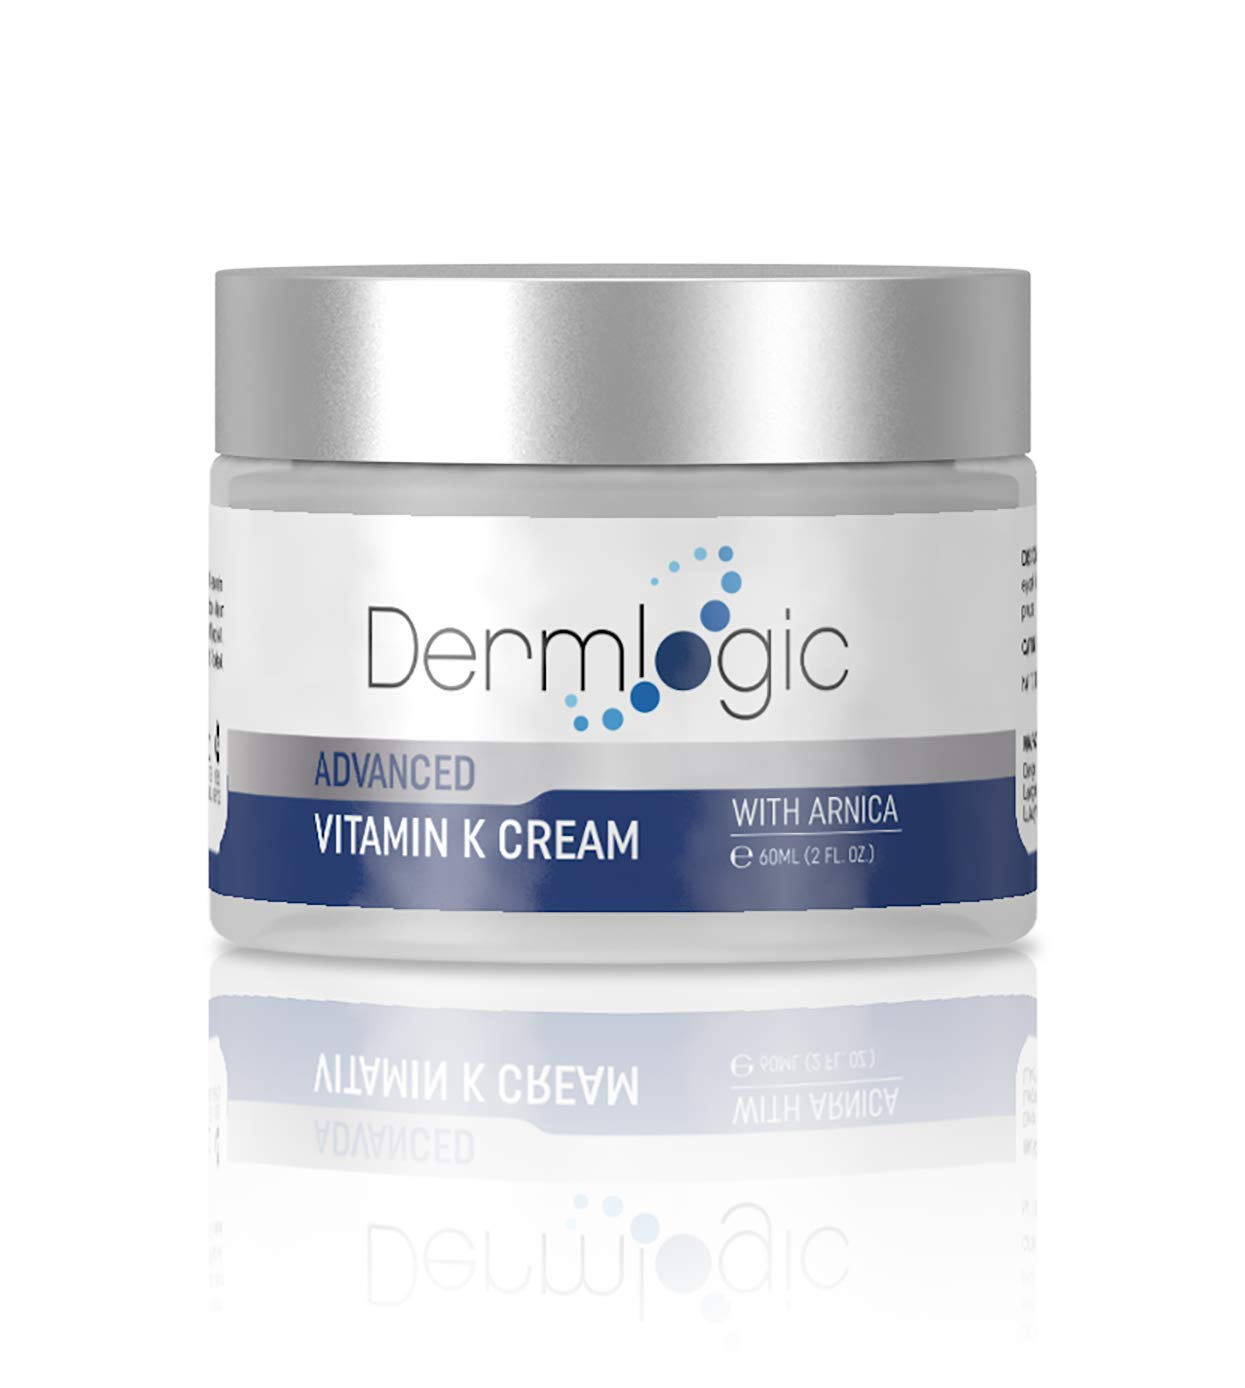 Vitamin K Cream- Moisturizing Bruise Healing Formula. Dark Spot Corrector for Bruising, Spider Veins & Broken Capillaries. Reduces Under Eye Dark Circles, Fine Lines, Puffiness, Wrinkles with Arnica by Dermlogic (Image #1)